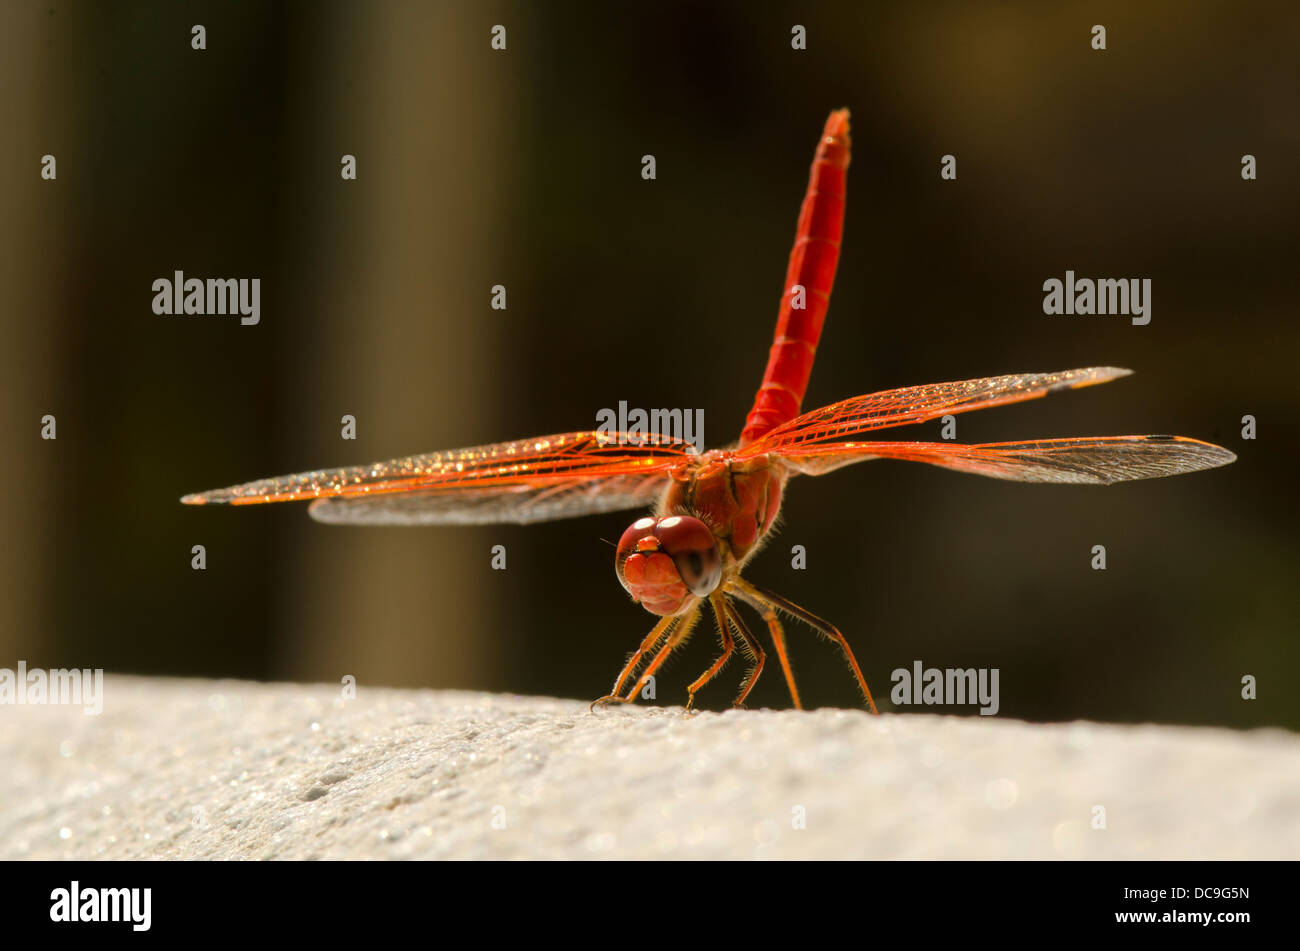 """Scarlet Darter, Crocothemis erythraea in full sun performing """"handstand"""" to minimise heat. Andalusia, Spain. Stock Photo"""